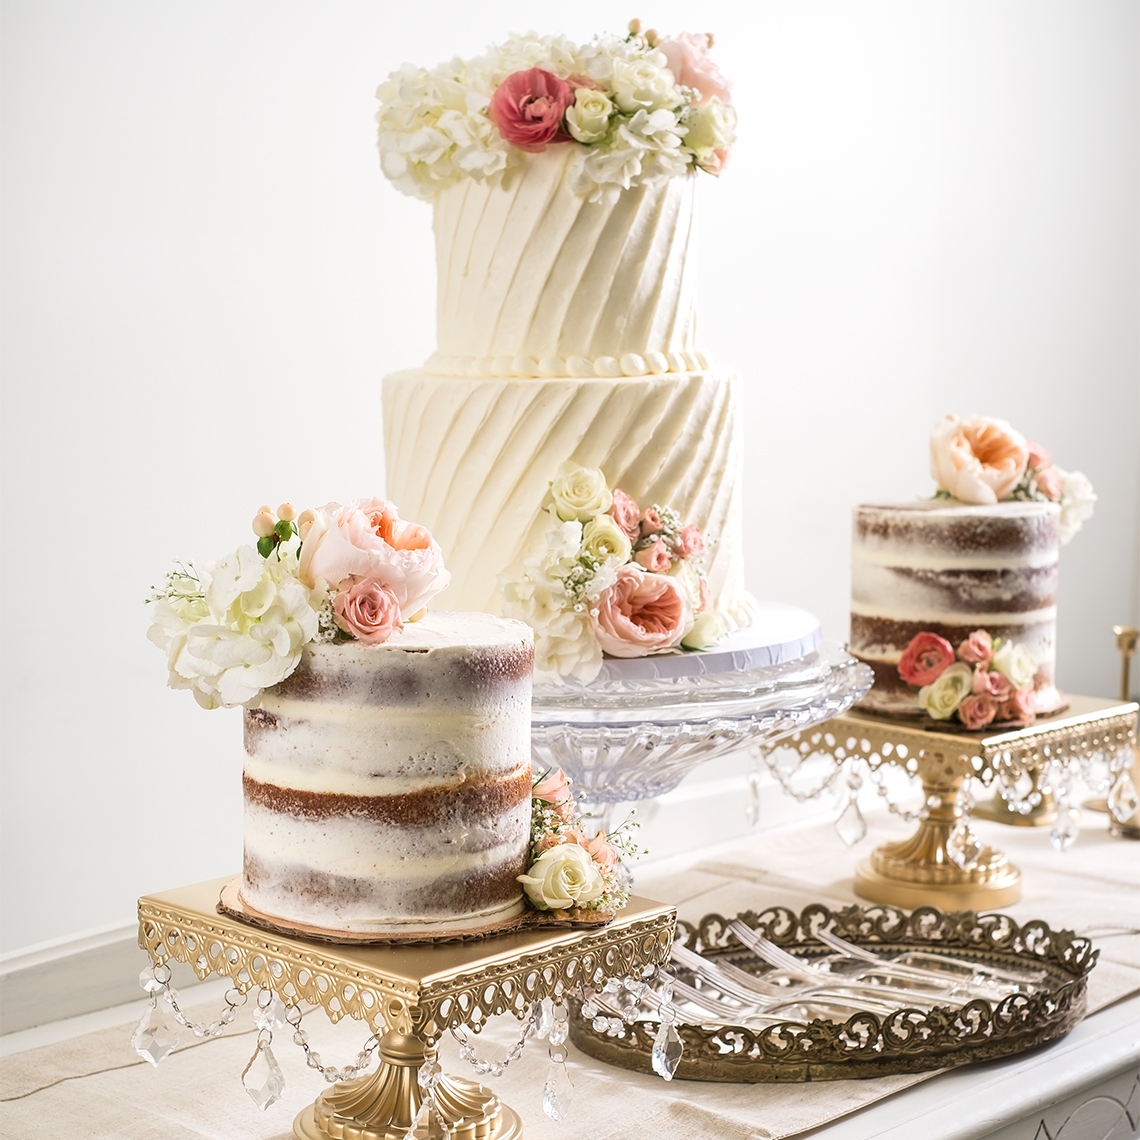 These Are The Sweetest Wedding Cake Trends Of The Season.